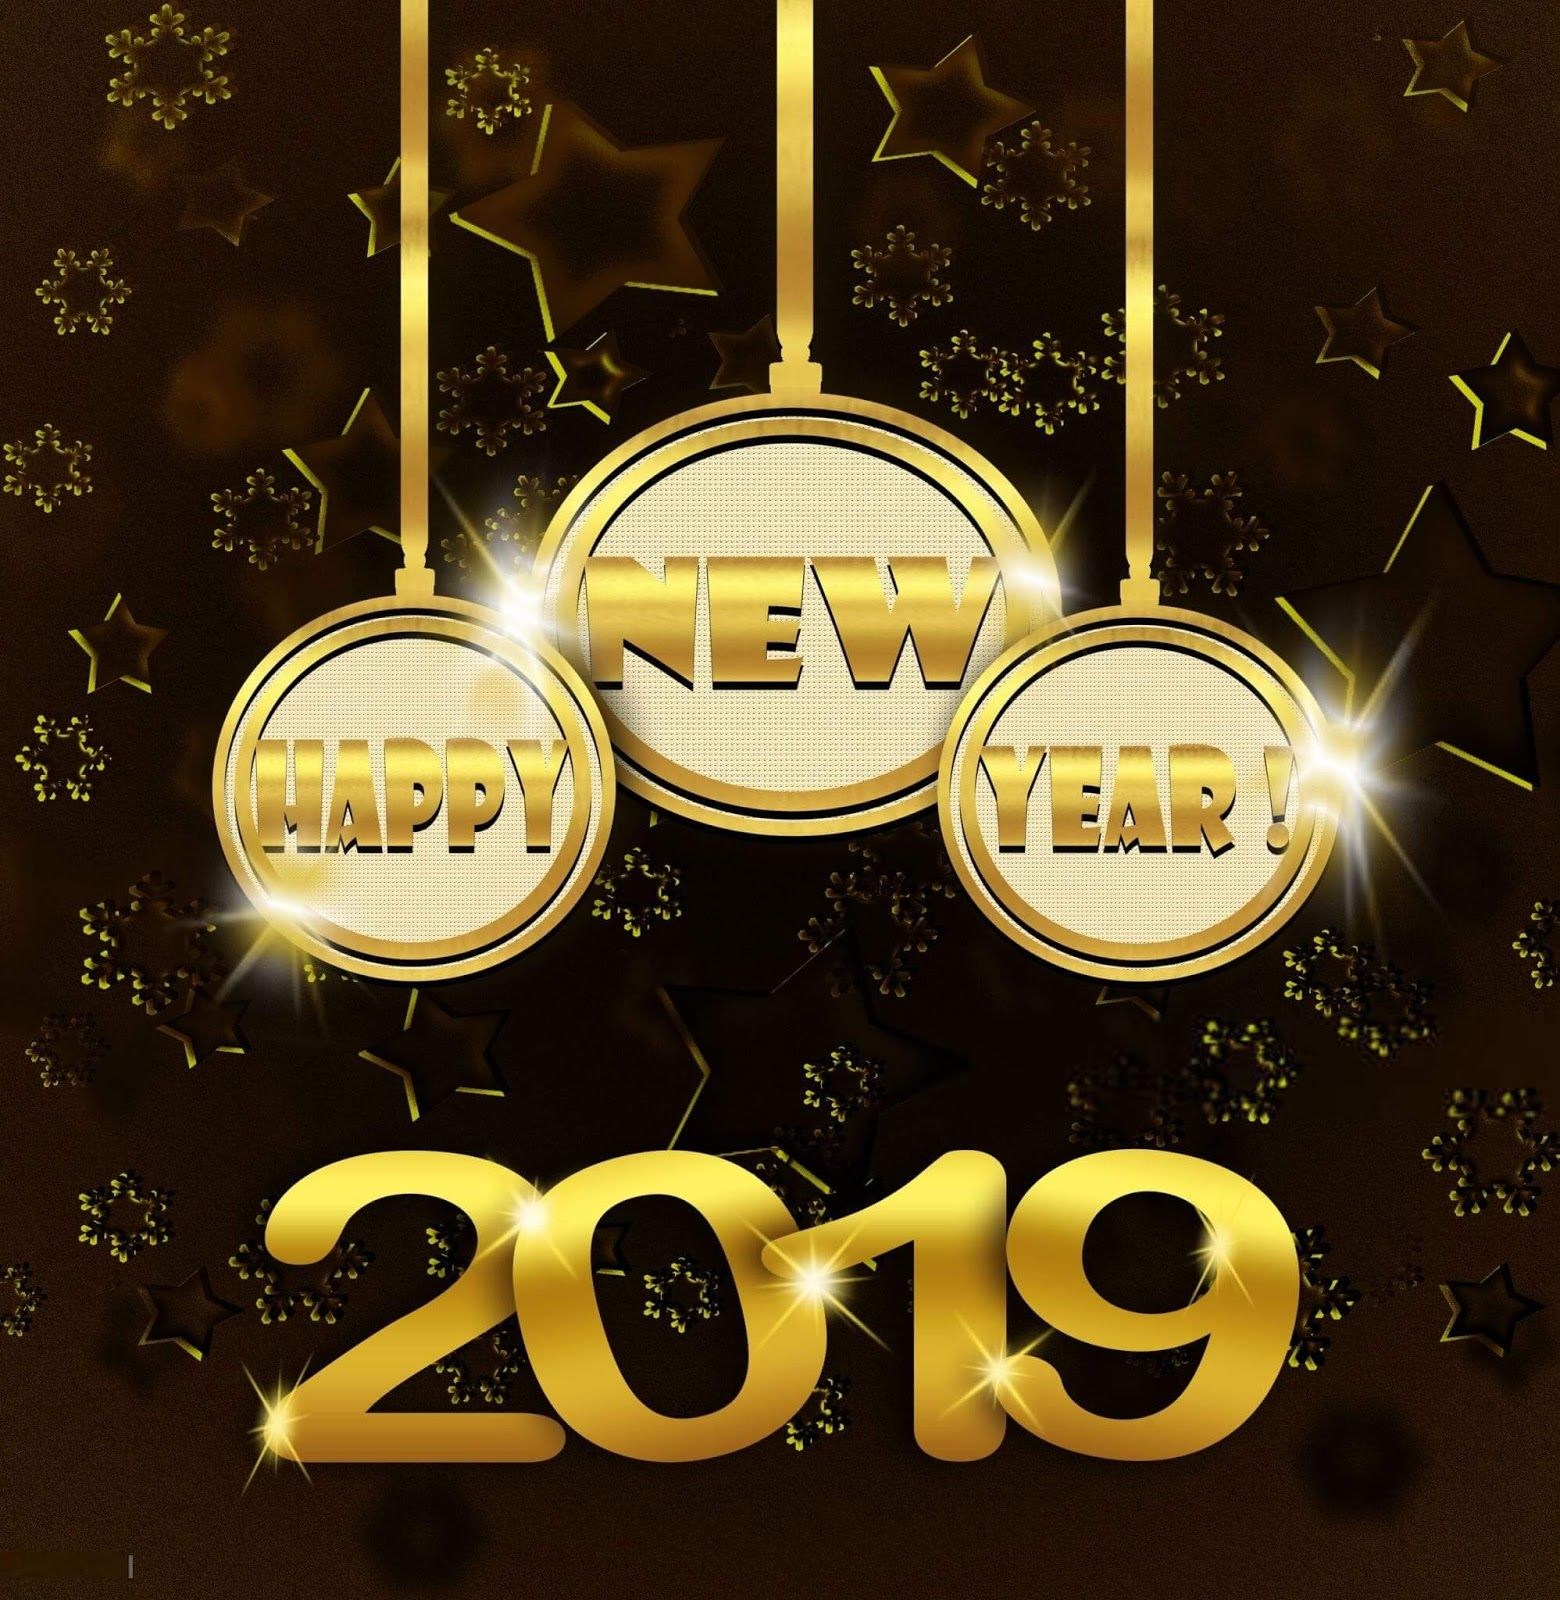 Happy New Year 2020 Hd Wallpaper Images Download Free Happy New Year Greetings Happy New Year Images Happy New Year 2019